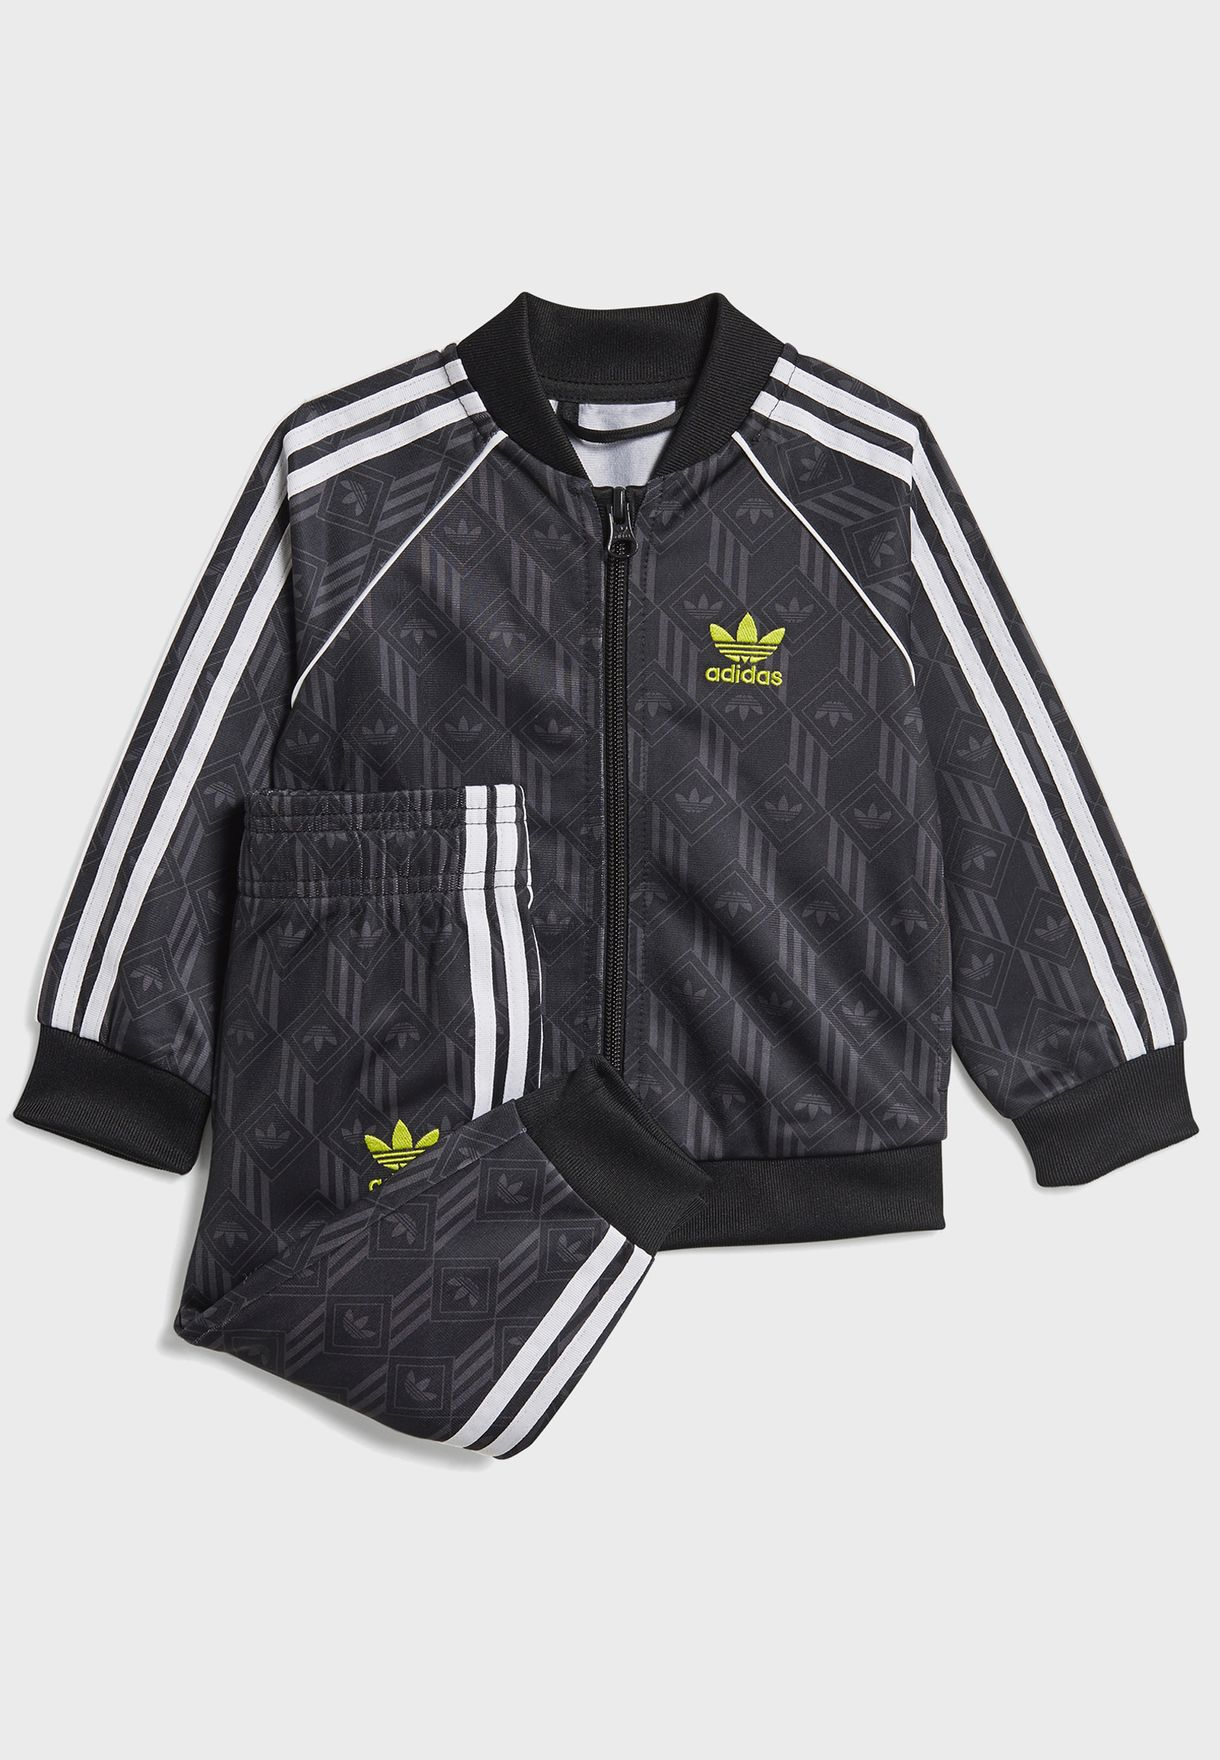 SST All Over Print Casual Kids Tracksuit